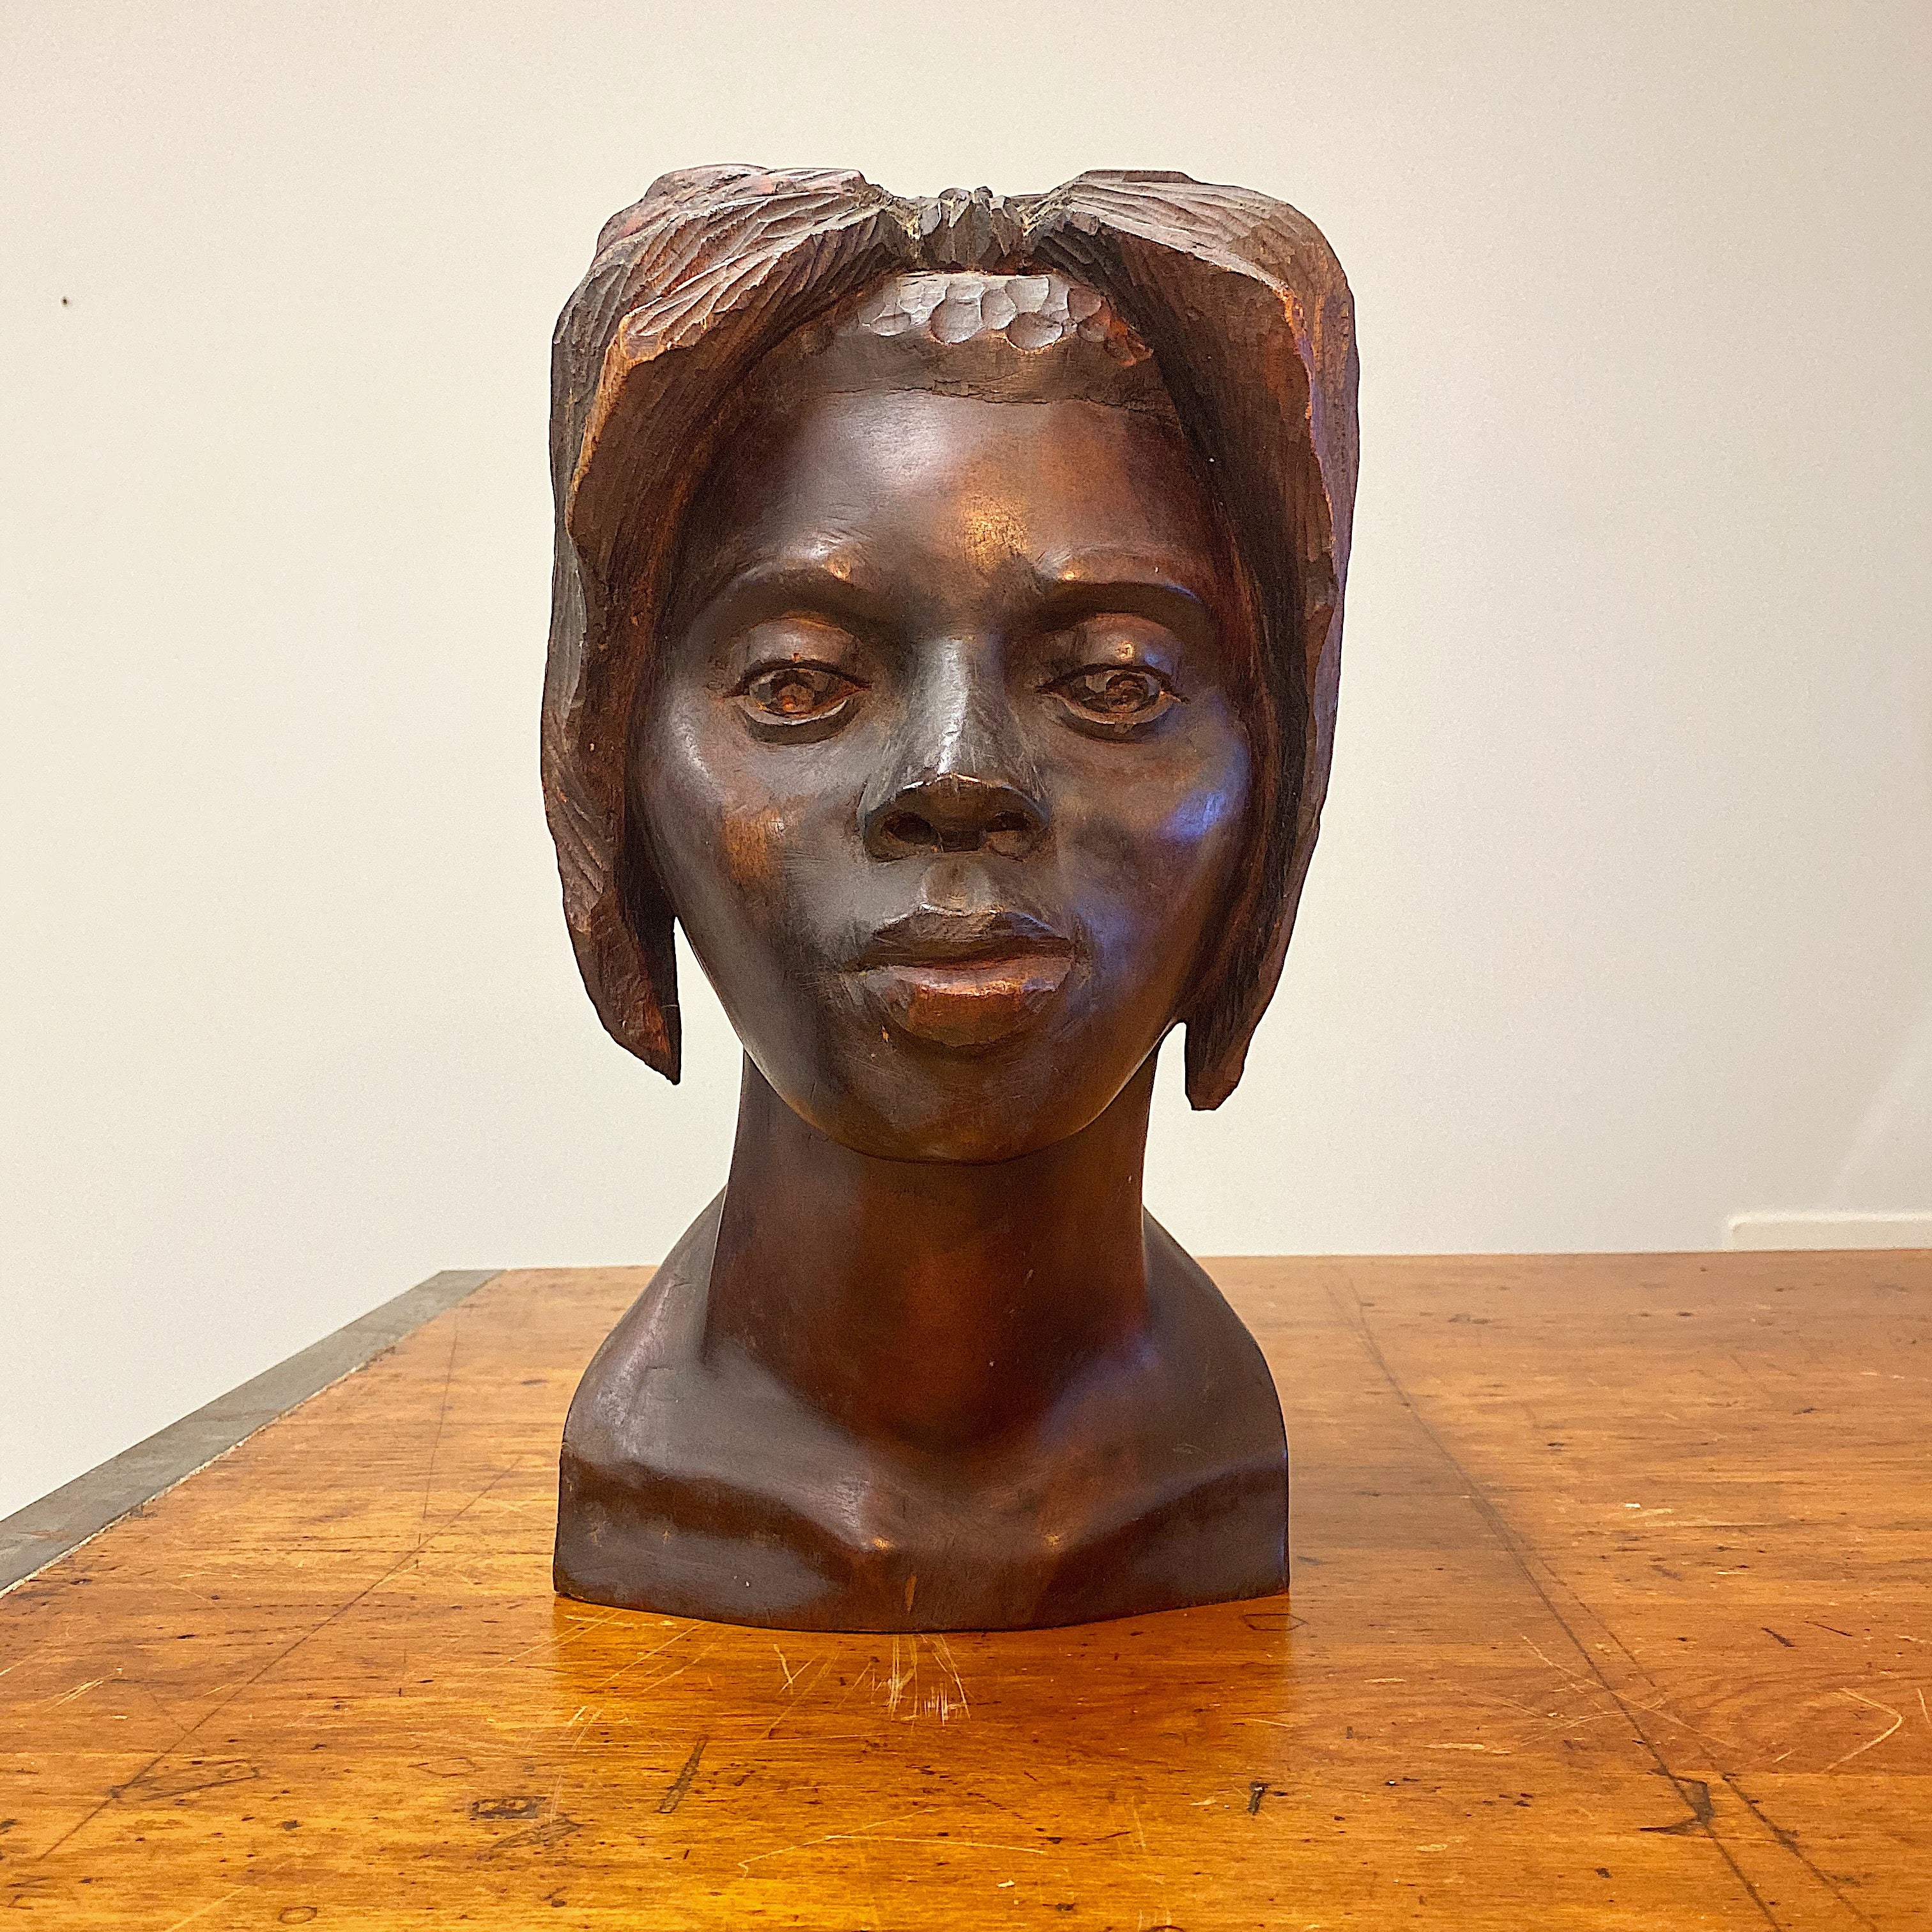 Haitian Wood Sculpture of Female Bust Signed Maurice - 1950s. - Vintage Art Sculptures - Artworks from Haiti - Rare Artwork